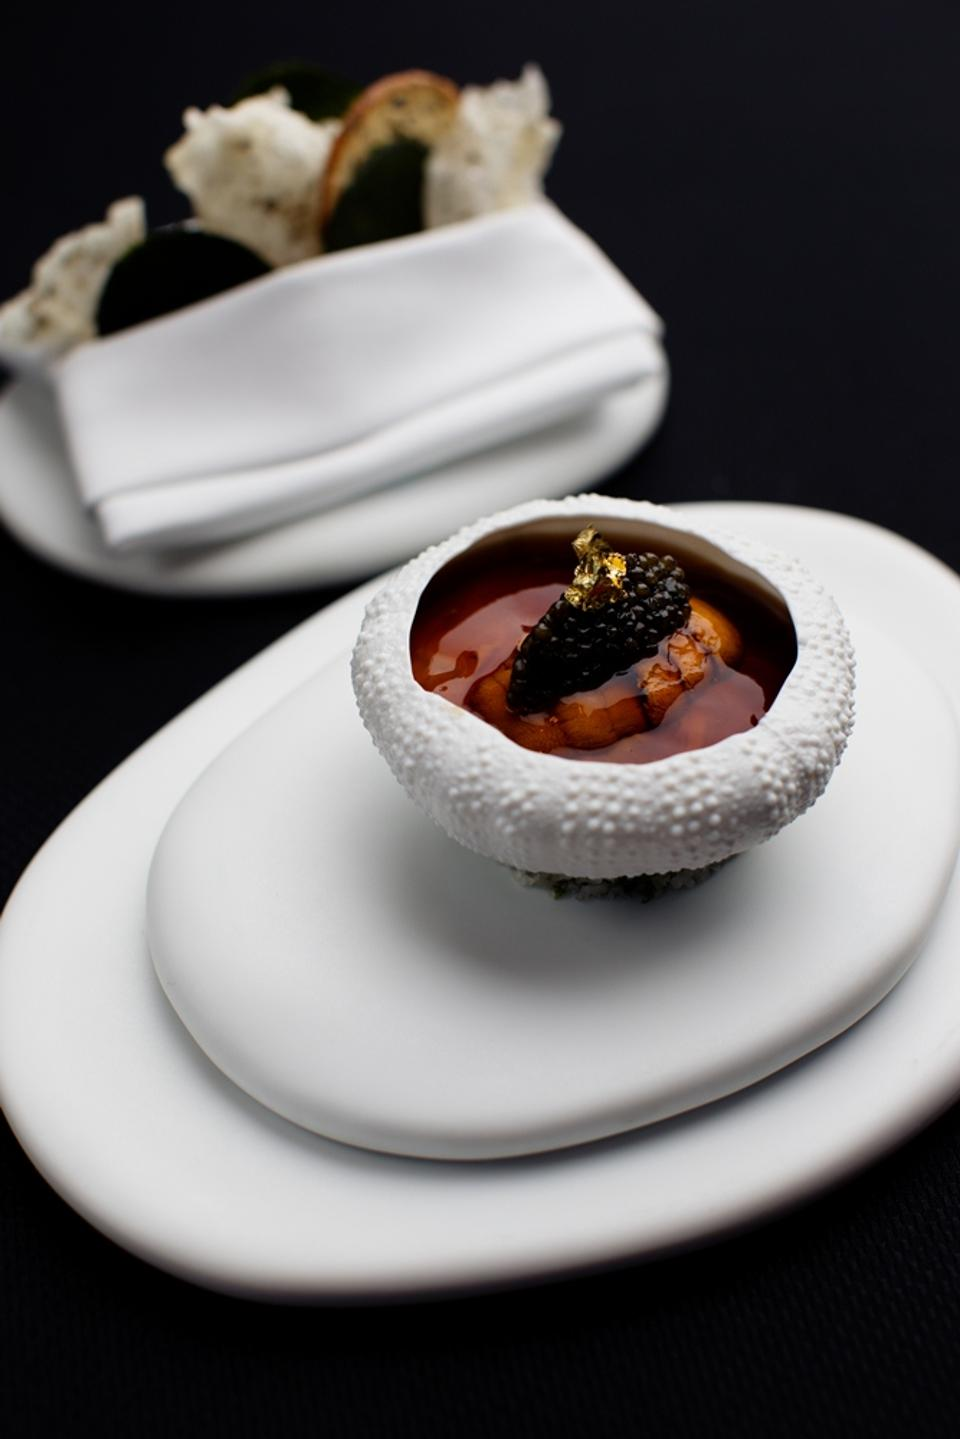 Hokkaido-Sea-Urchin-in-a-Lobster-Jell-O-with-Cauliflower-Caviar-and-Crispy-Seaweed-Waffles-Amber-Hong-Kong